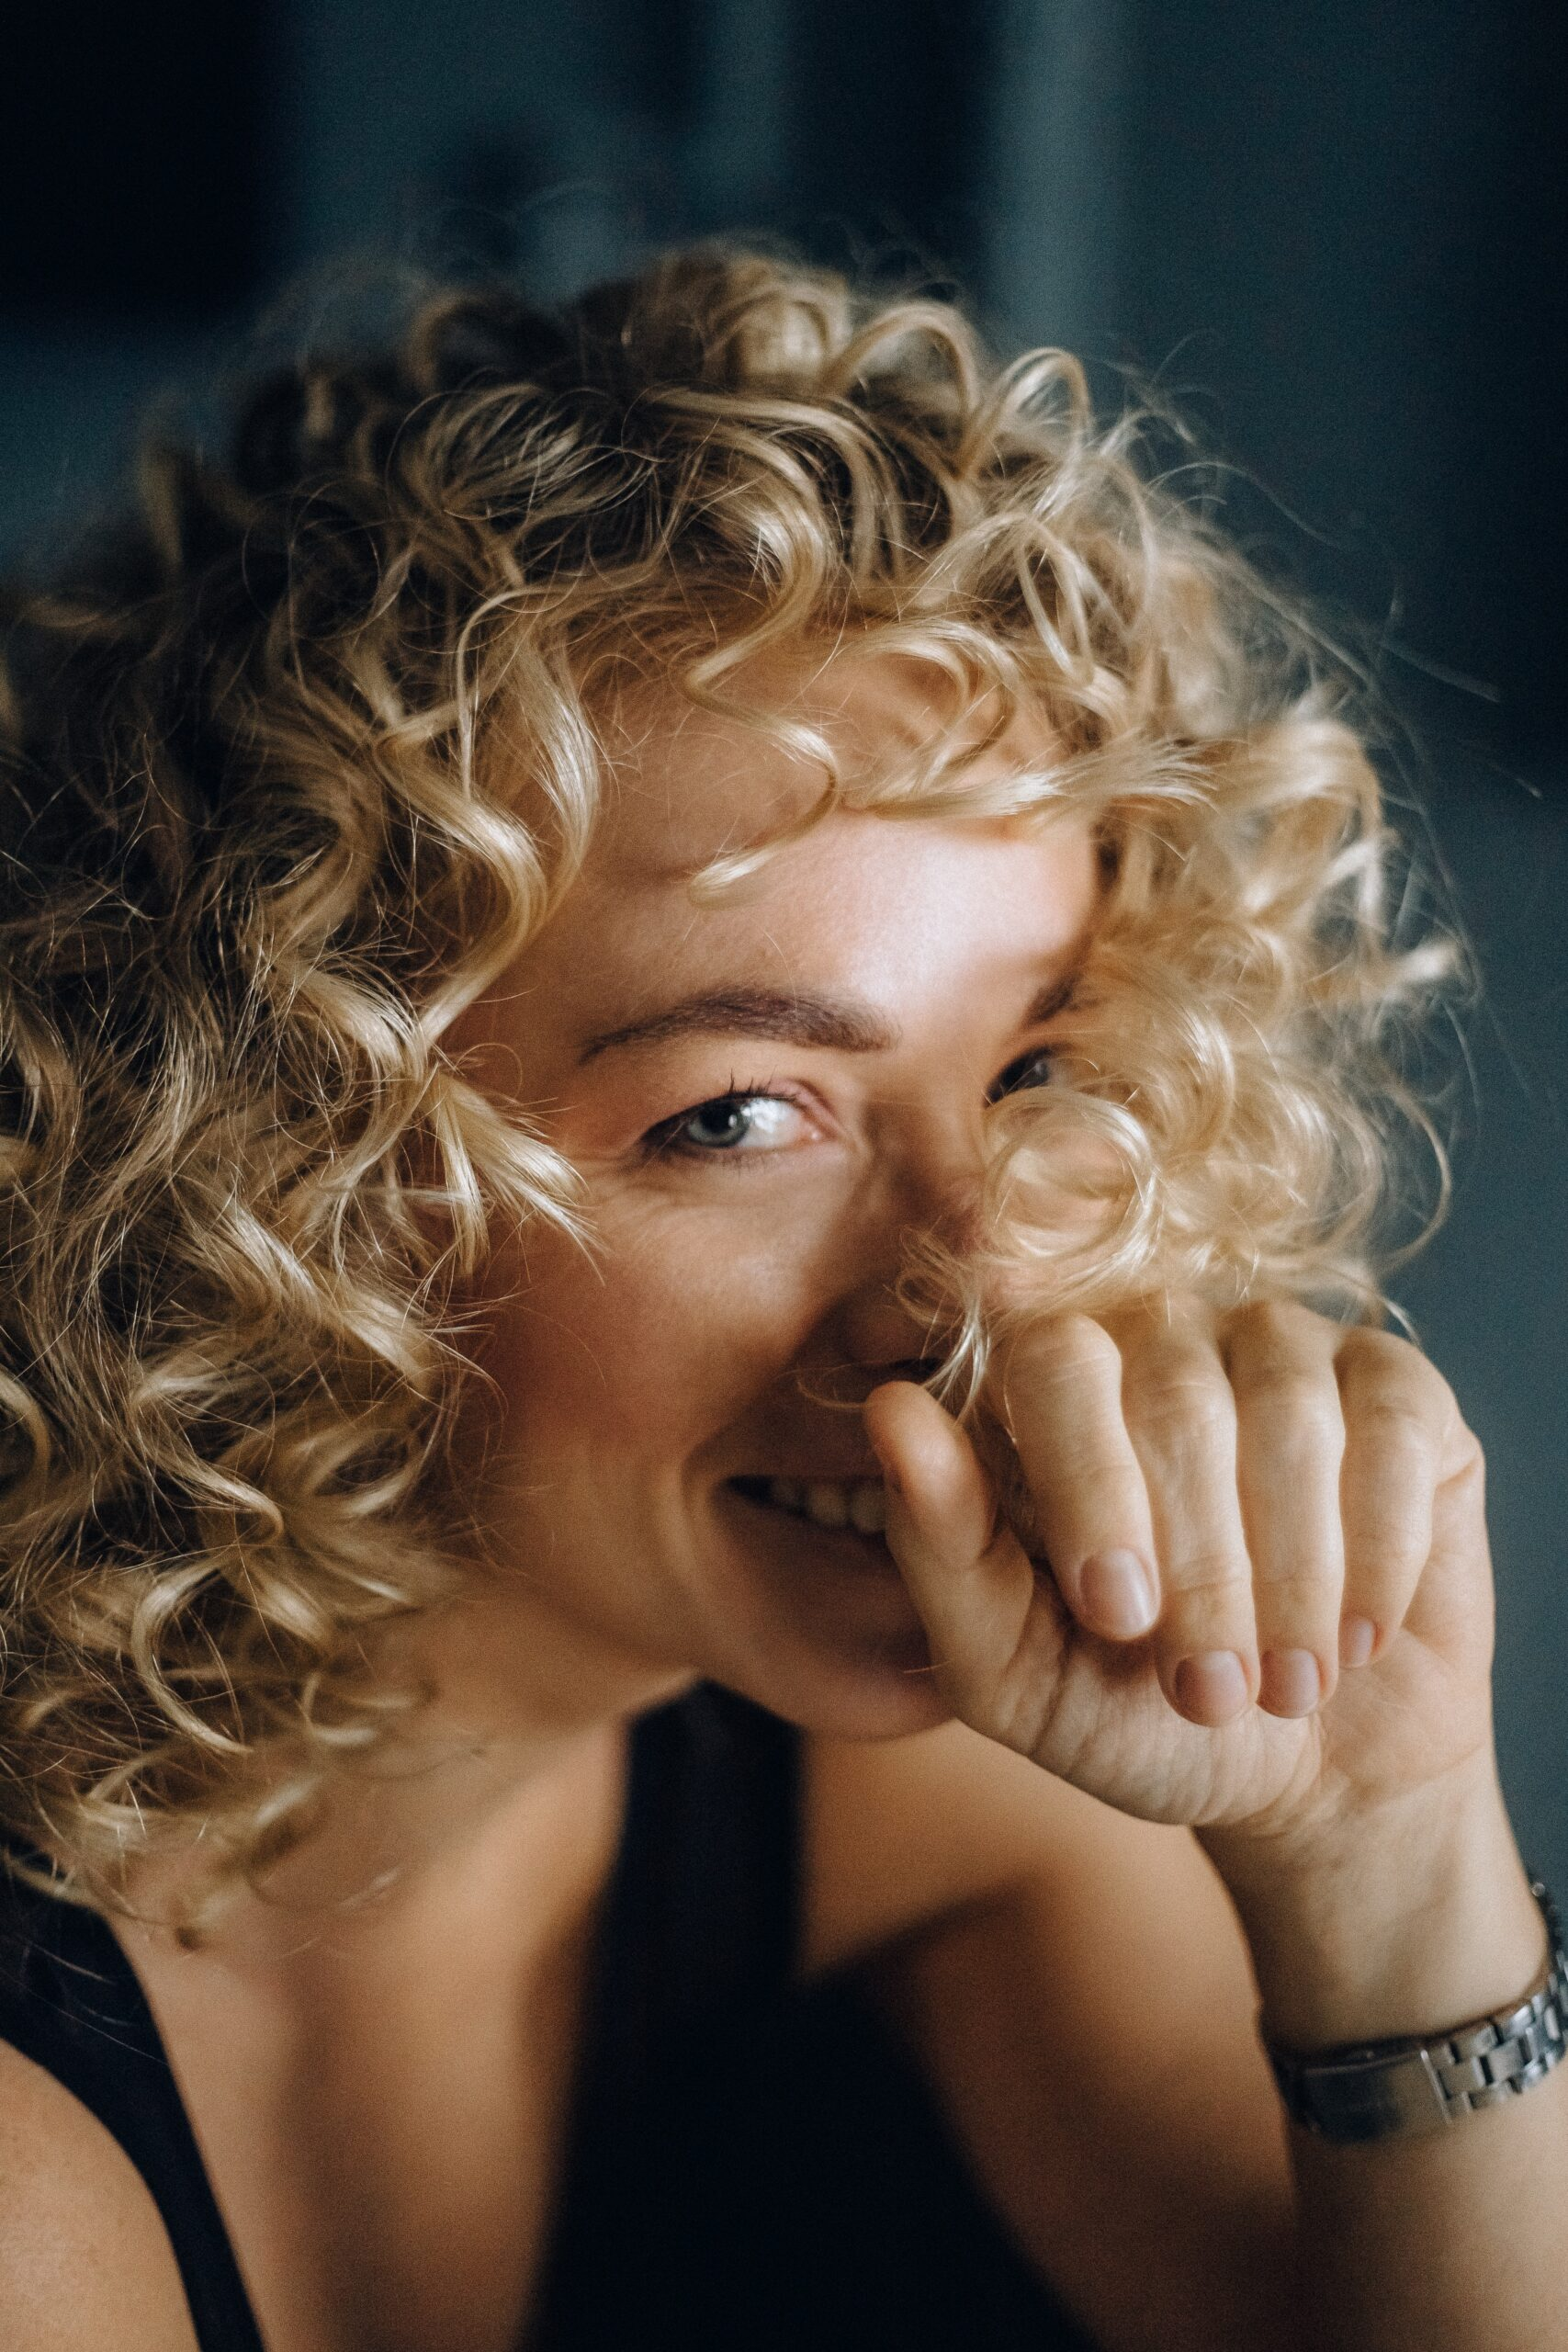 Blonde haired woman smiling with her hand on her face